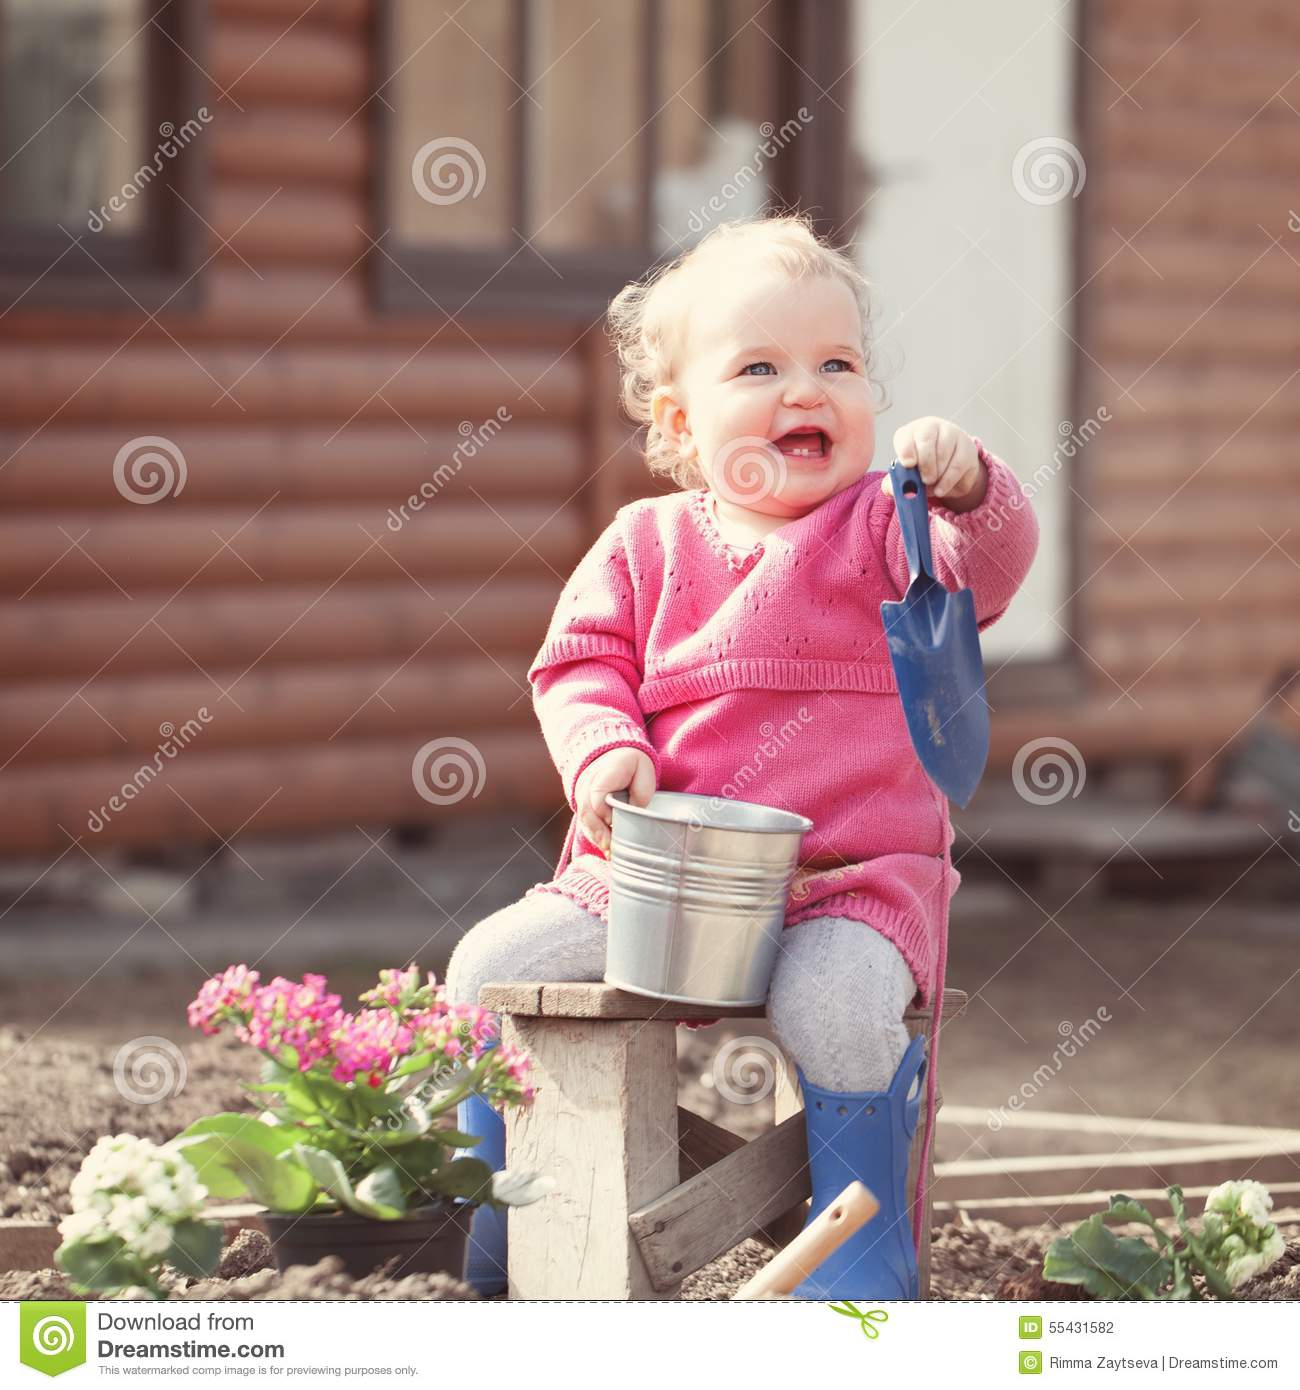 Cute Baby Girl In Pink Dress Puts Flowers Stock Photo 55431582